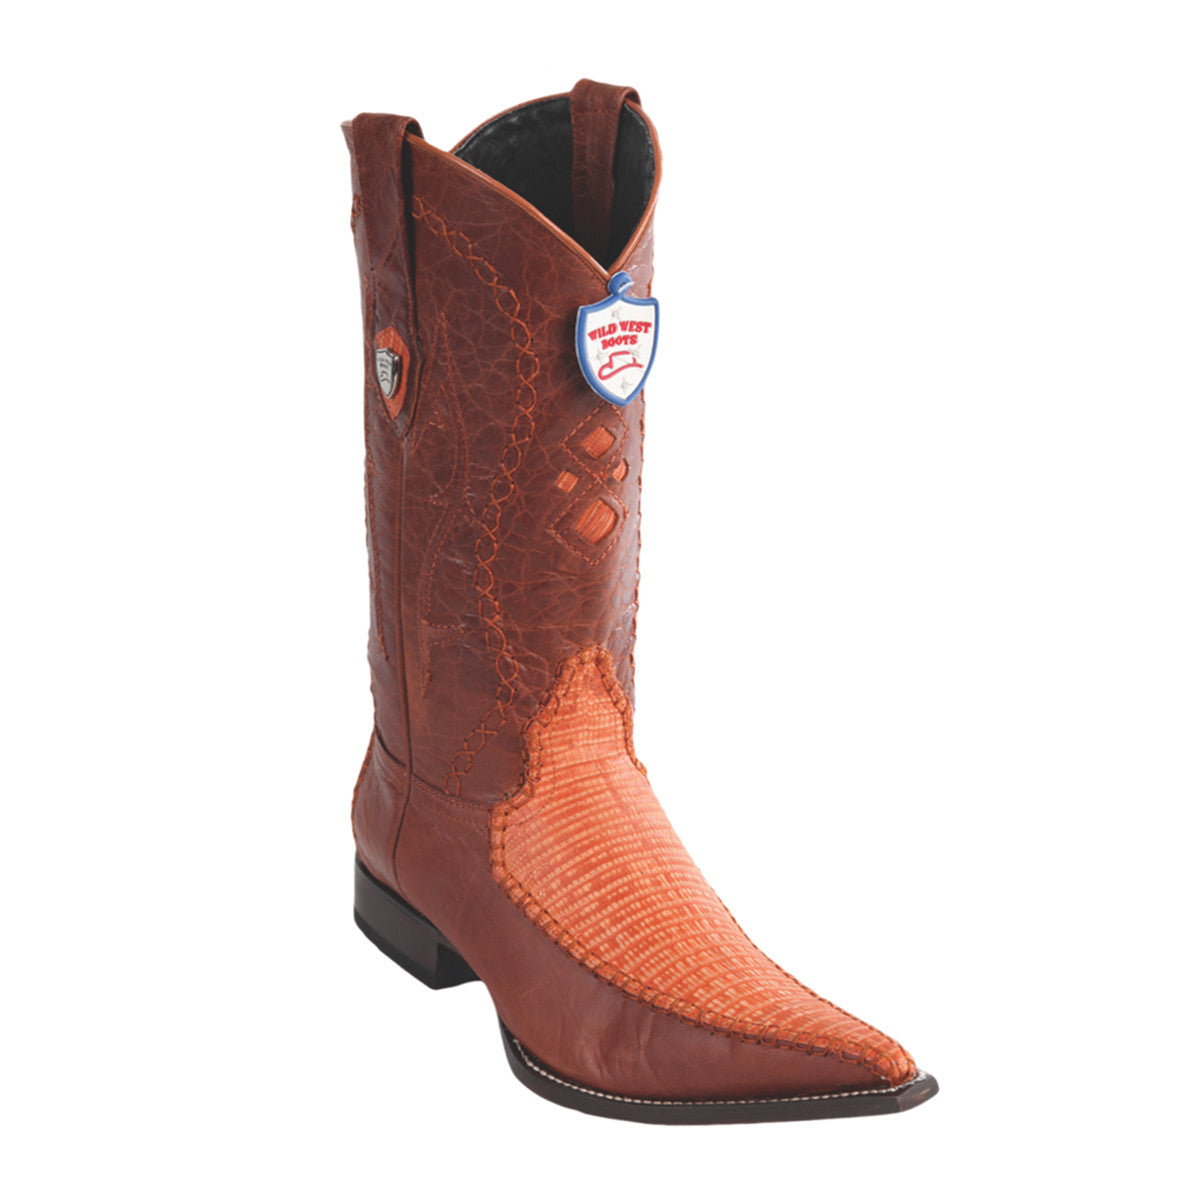 Wild West Boots 3x Toe Lizard/Deer